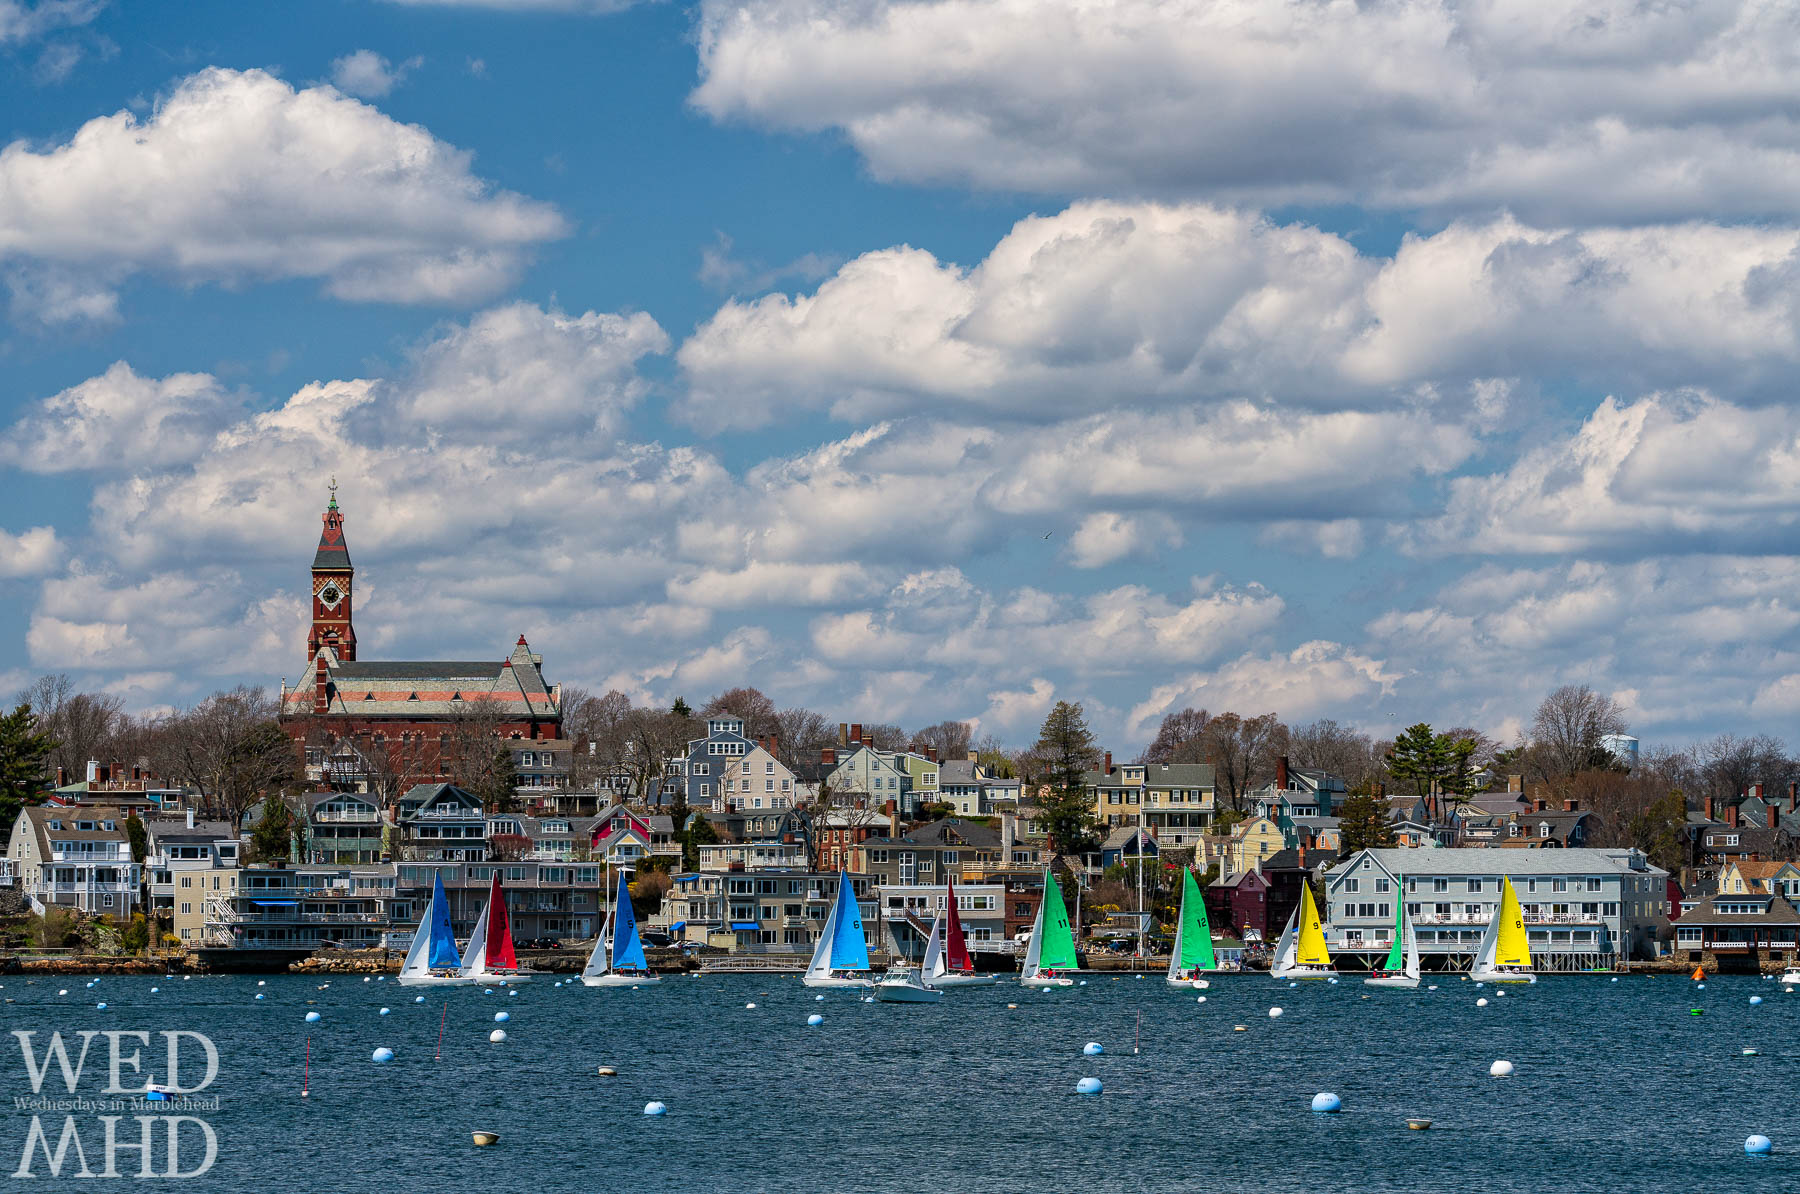 On the last weekend in April, sailors are captured racing for the Jackson Cup within Marblehead Harbor